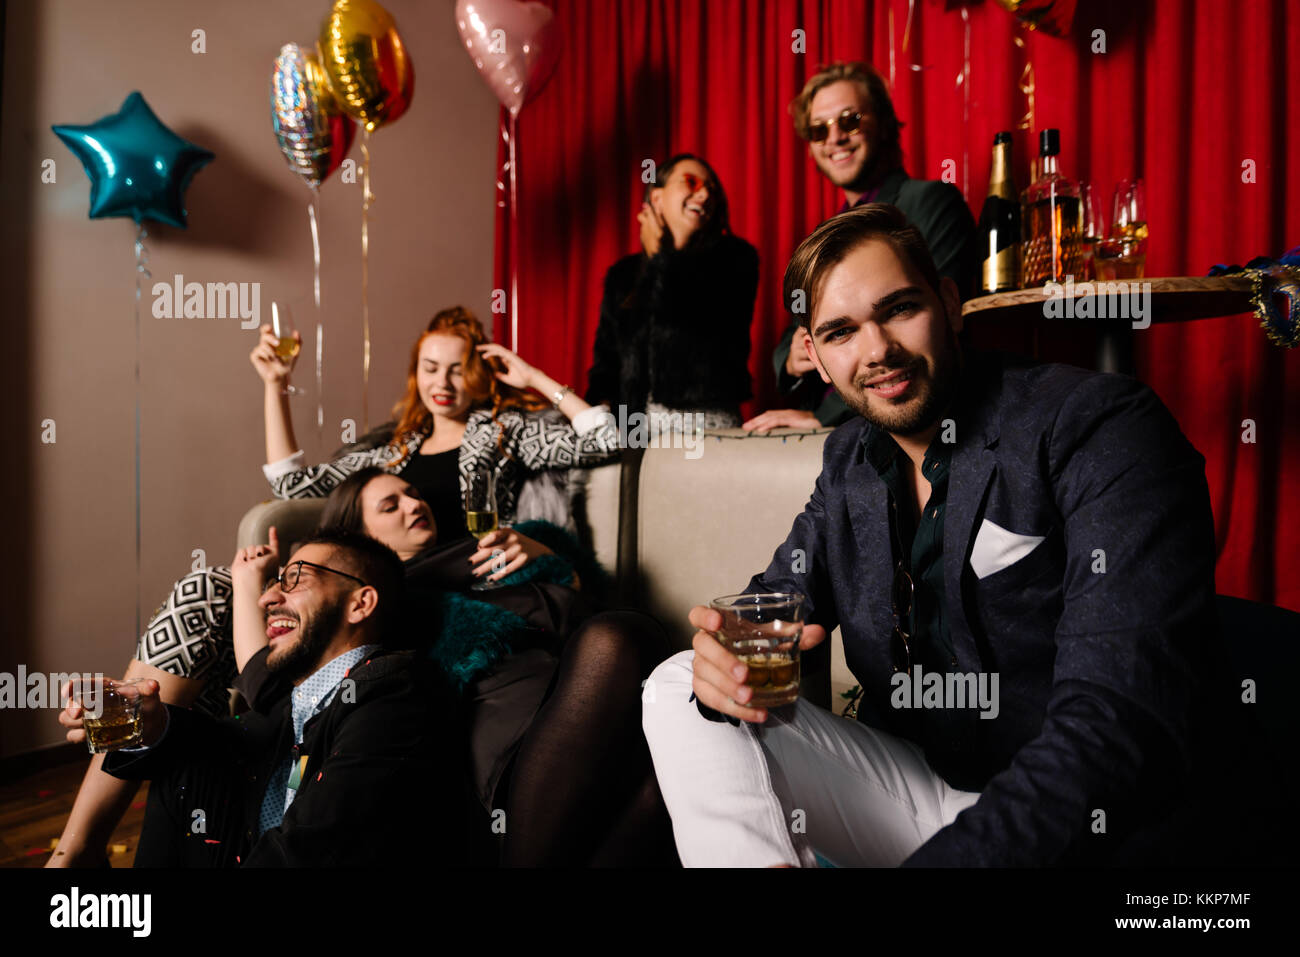 Young man on a party with partying people in background - Stock Image